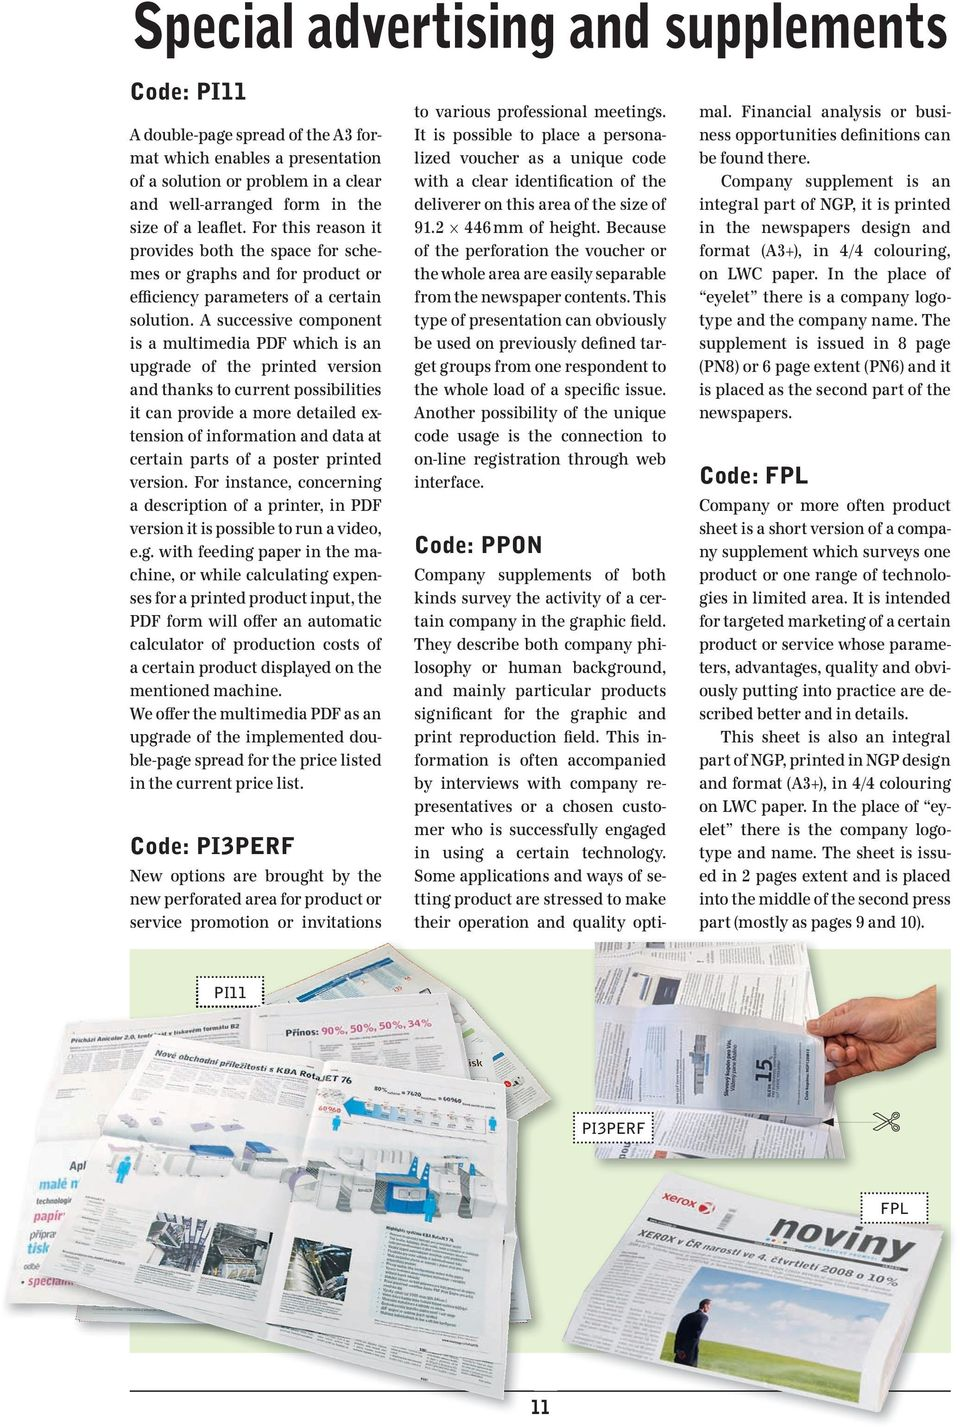 A successive component is a multimedia PDF which is an upgrade of the printed version and thanks to current possibilities it can provide a more detailed extension of information and data at certain